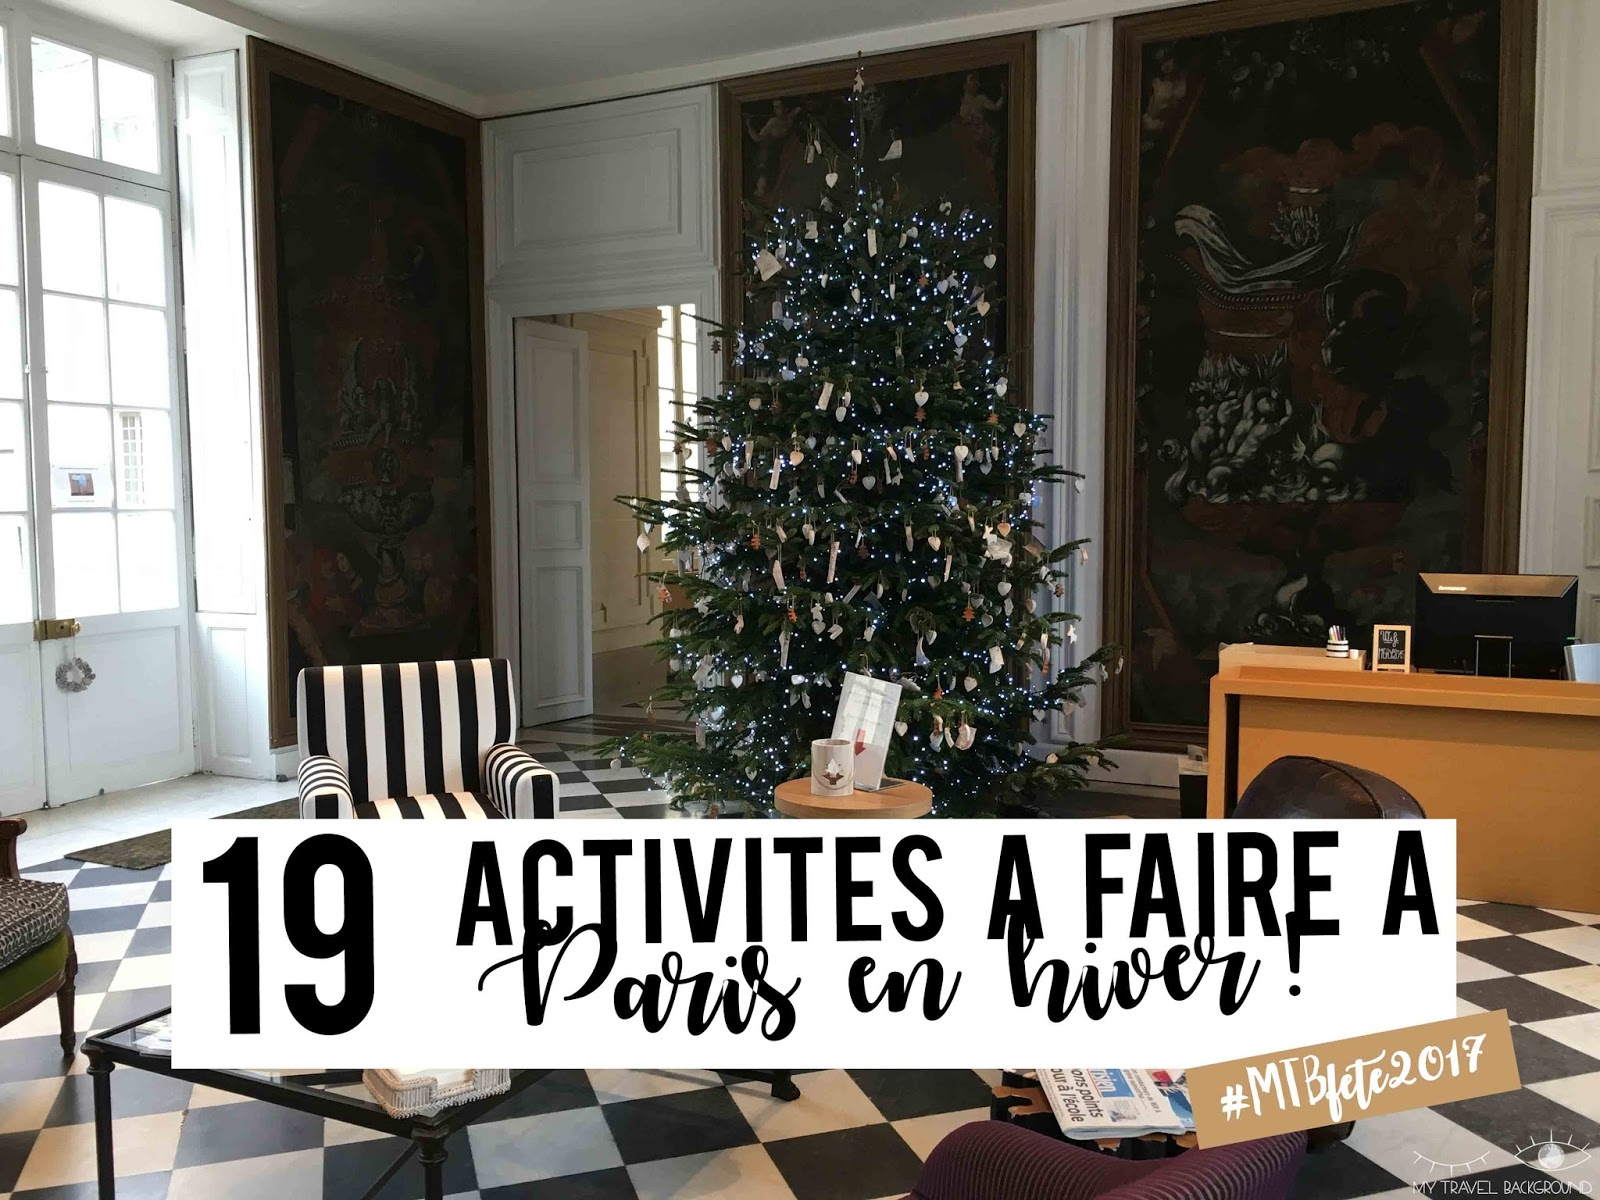 My Travel Background : 19 activités à faire à Paris en hiver